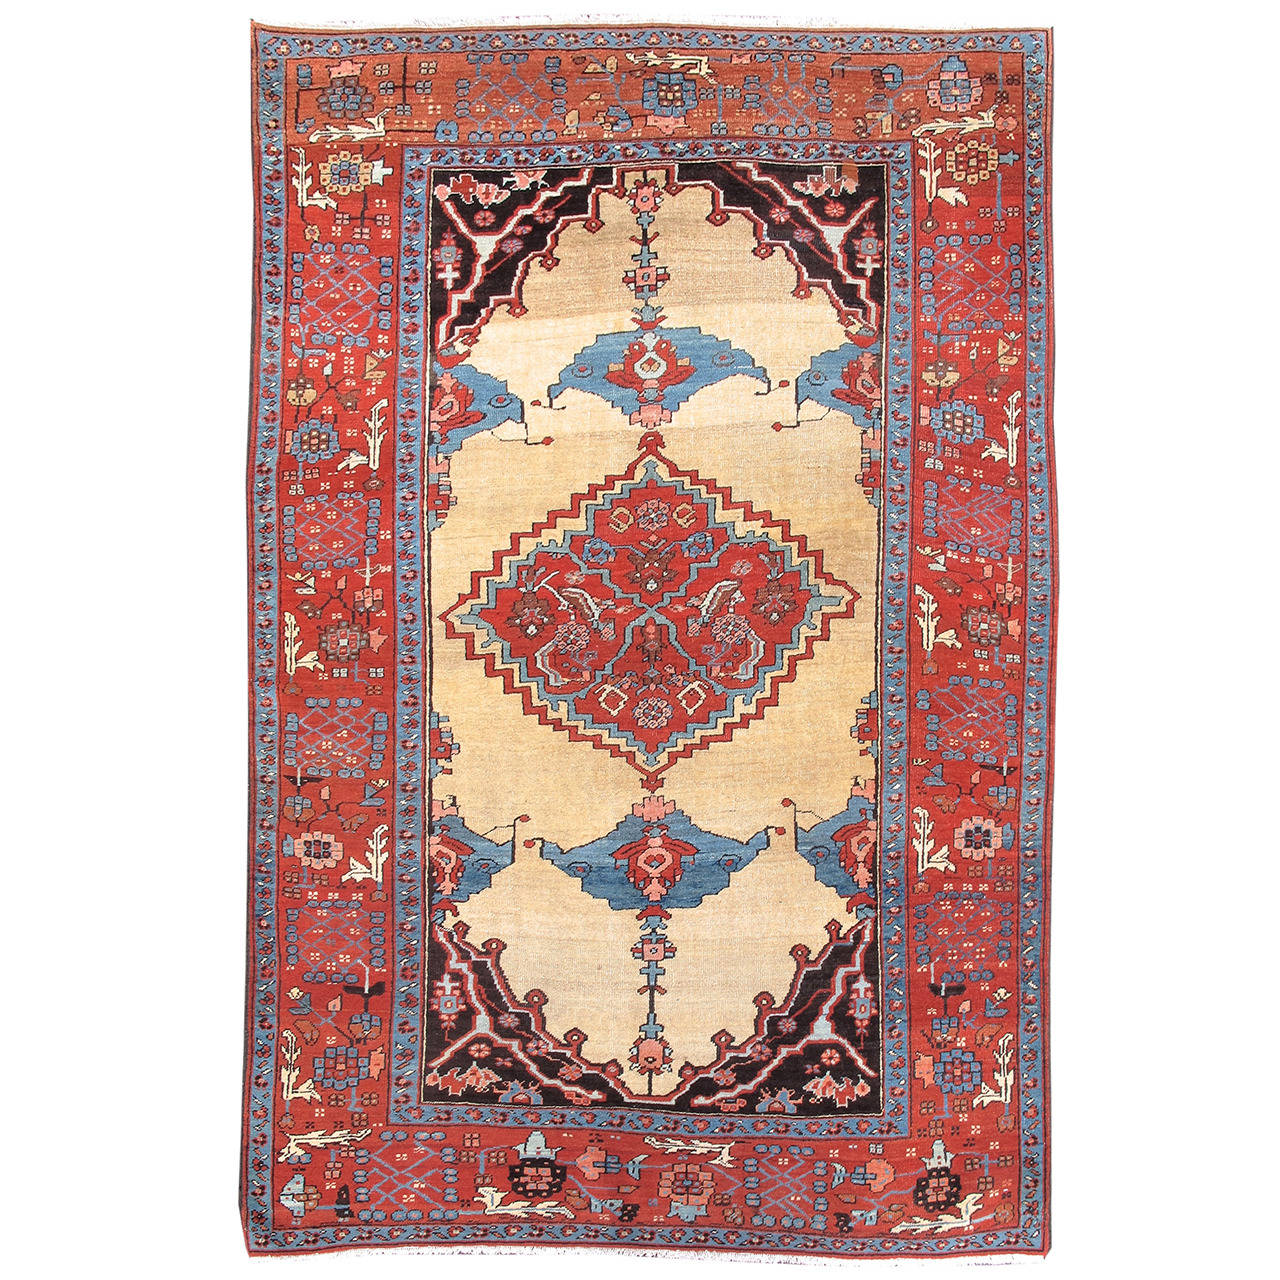 Rug Report 4 Market Trends From An Expert